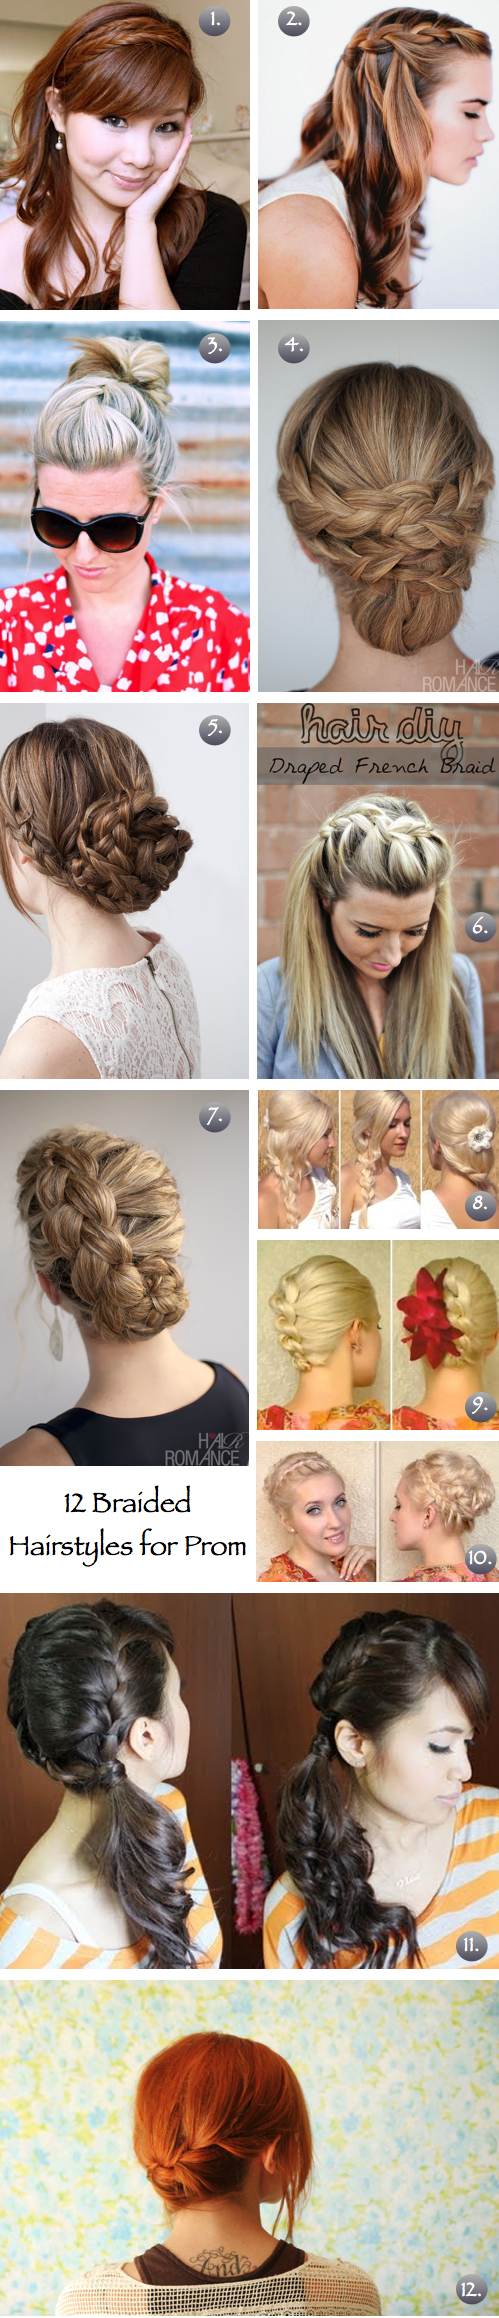 diy prom hairstyles : 12 DIY Braided Hairstyles - The Frugal Female